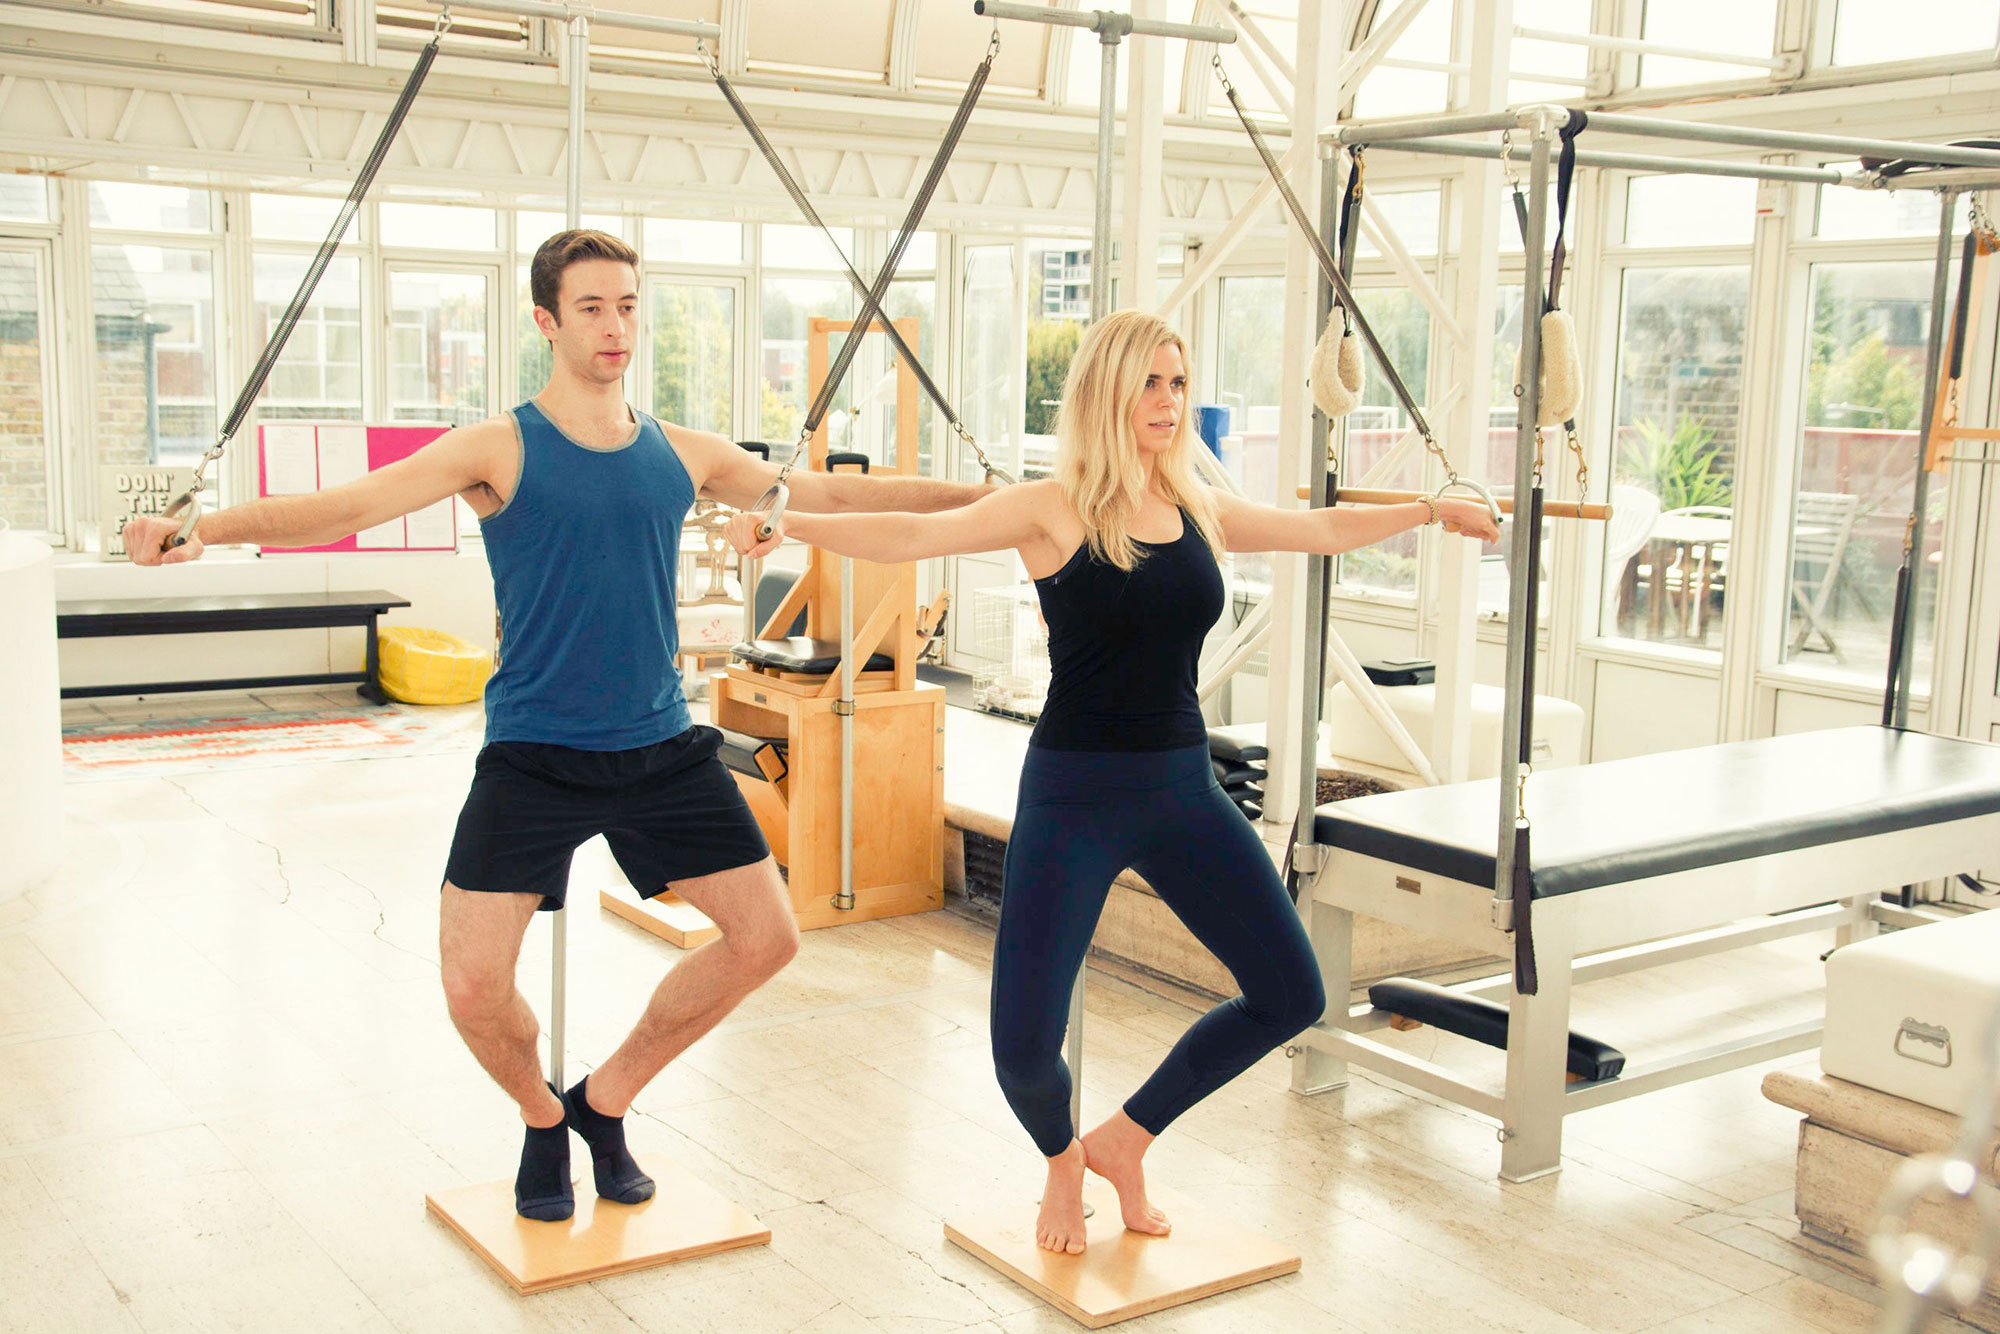 1:1 / 2:1 SESSIONS - Accelerate your learning with a 1:1 or 2:1 private session with one of London's top Pilates instructors.